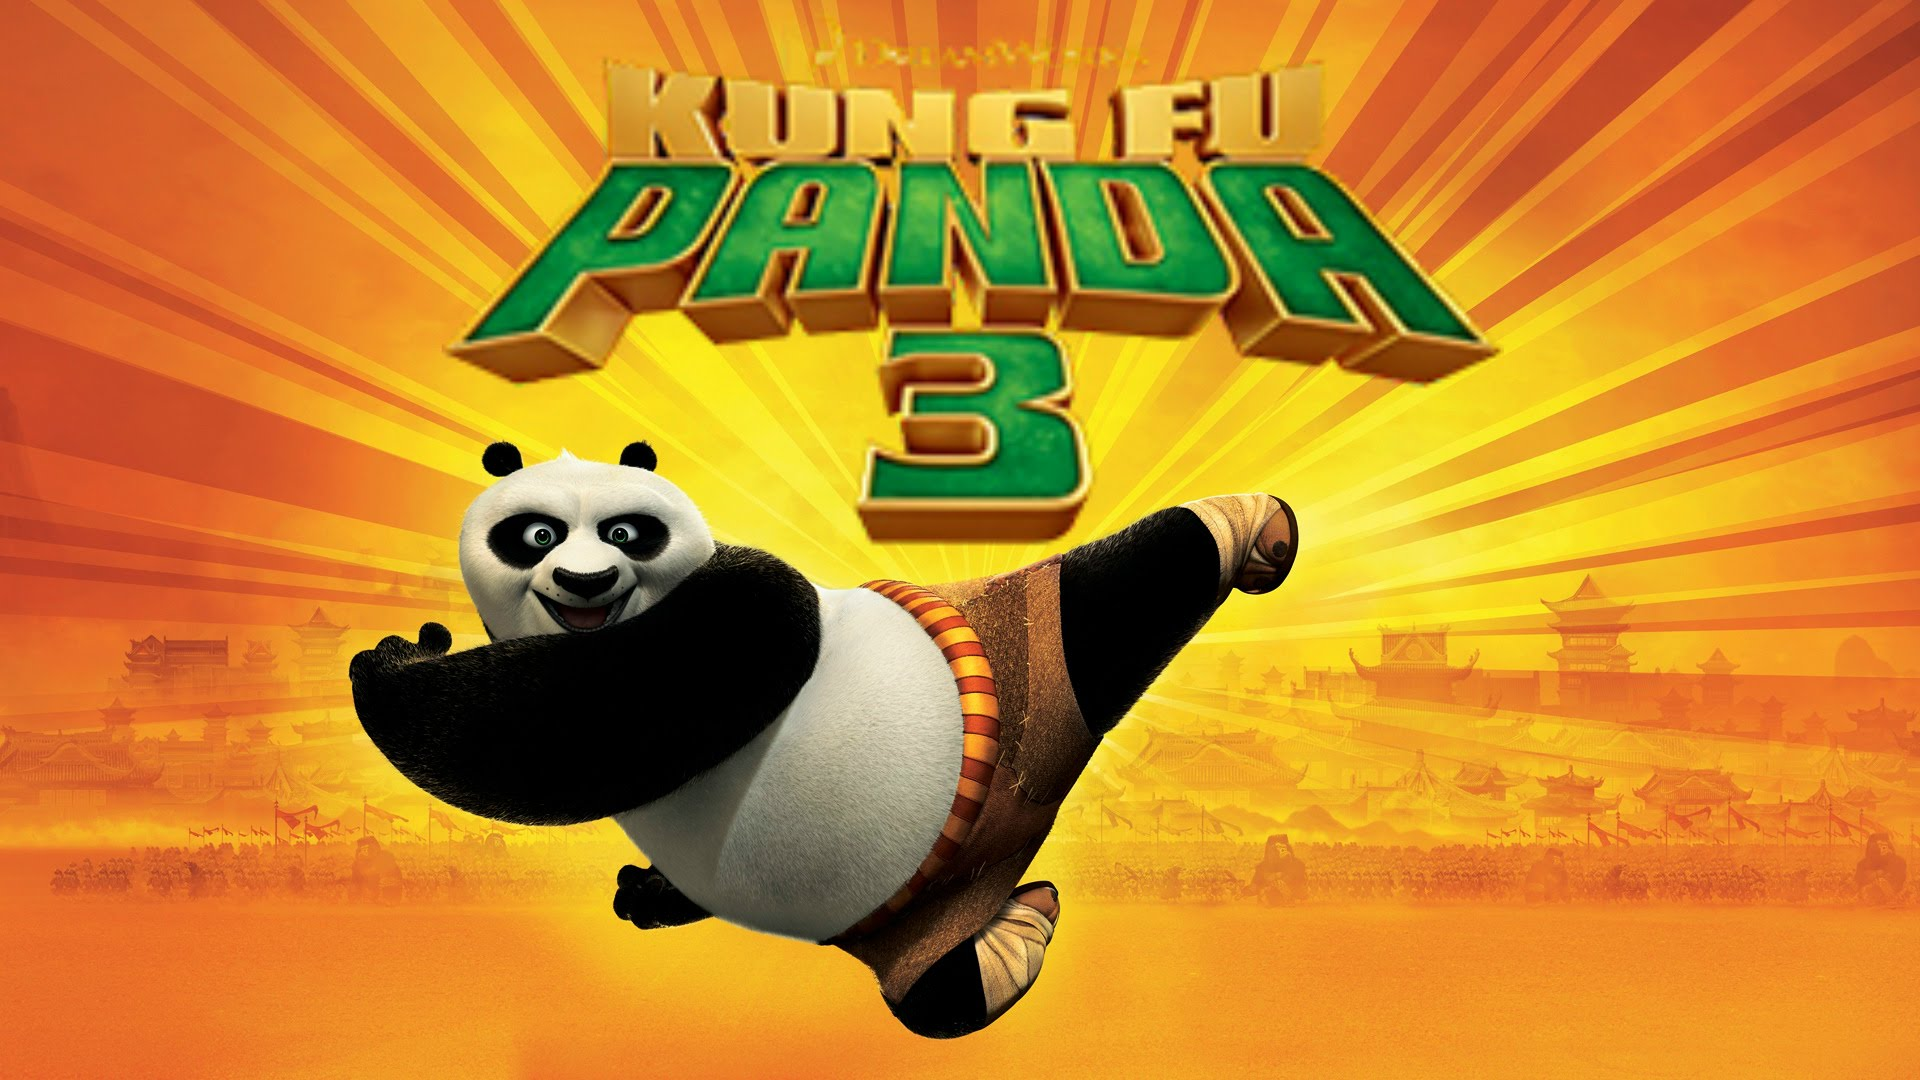 KUNG FU PANDA 3 - Image du film movie picture 1 - Go with the Blog